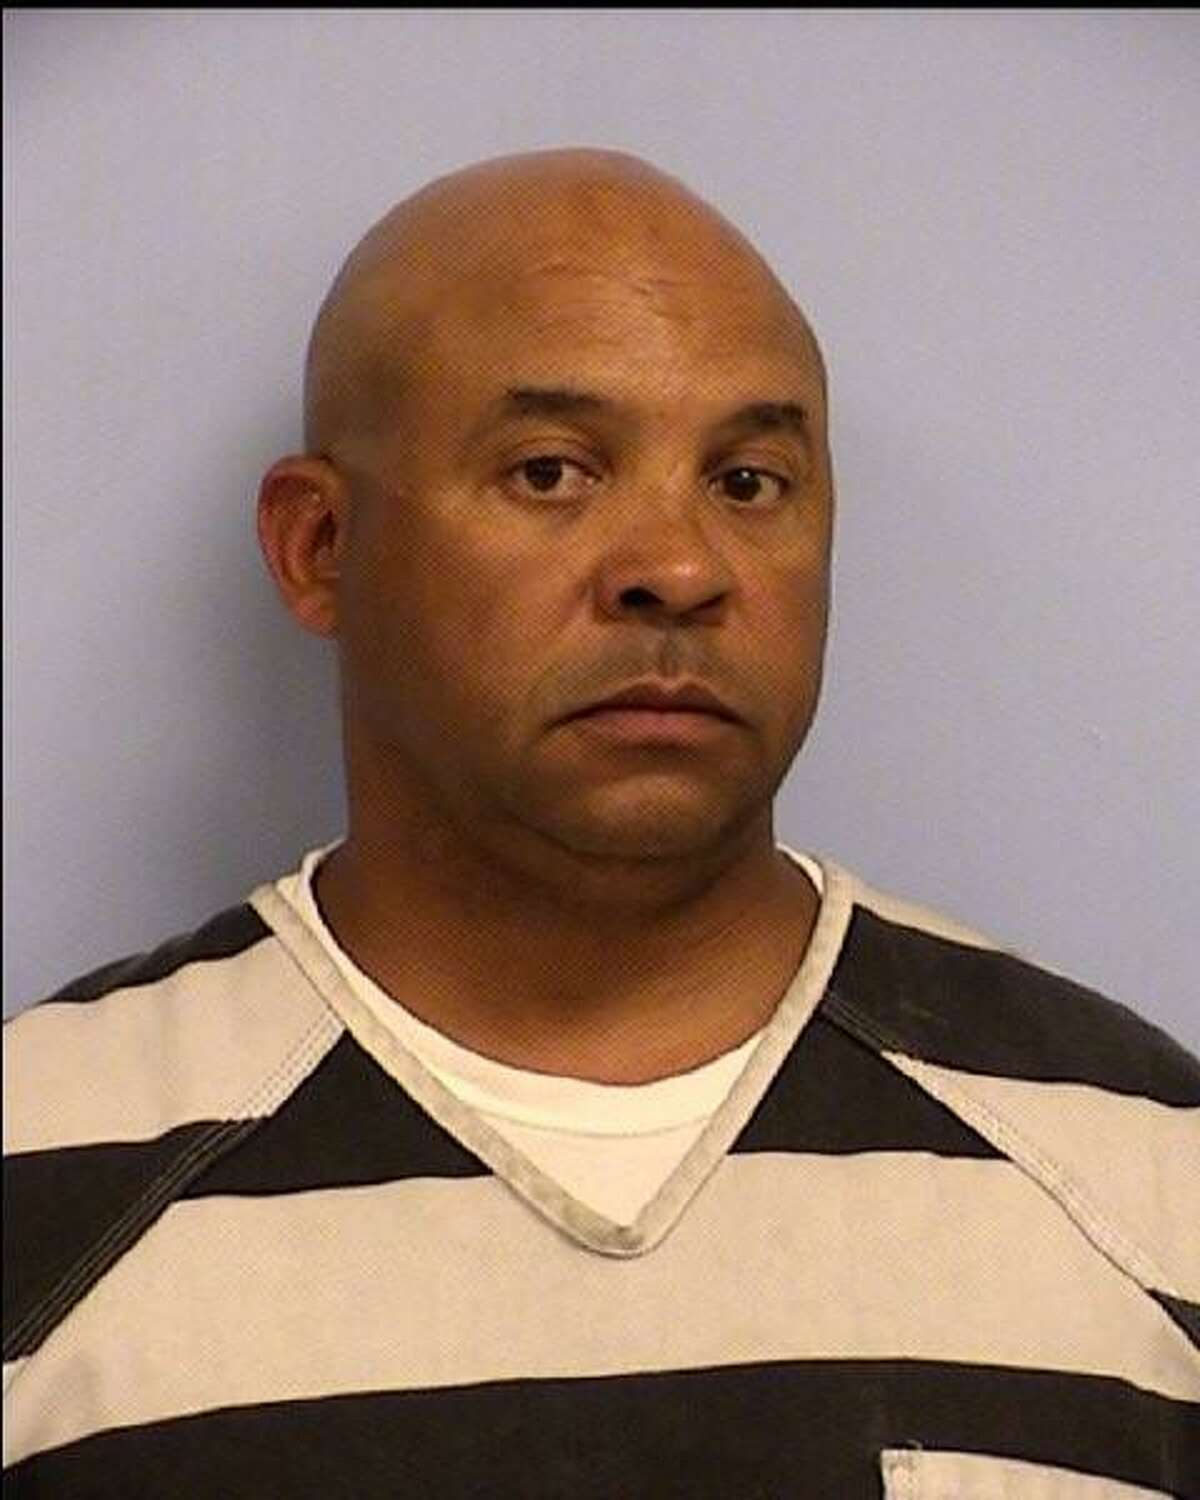 John M. Jones, leader of the Counterterrorism Division of the Texas Department of Public Safety, was arrested on Tuesday night, July 30, 2019, on a sexual assault charge.